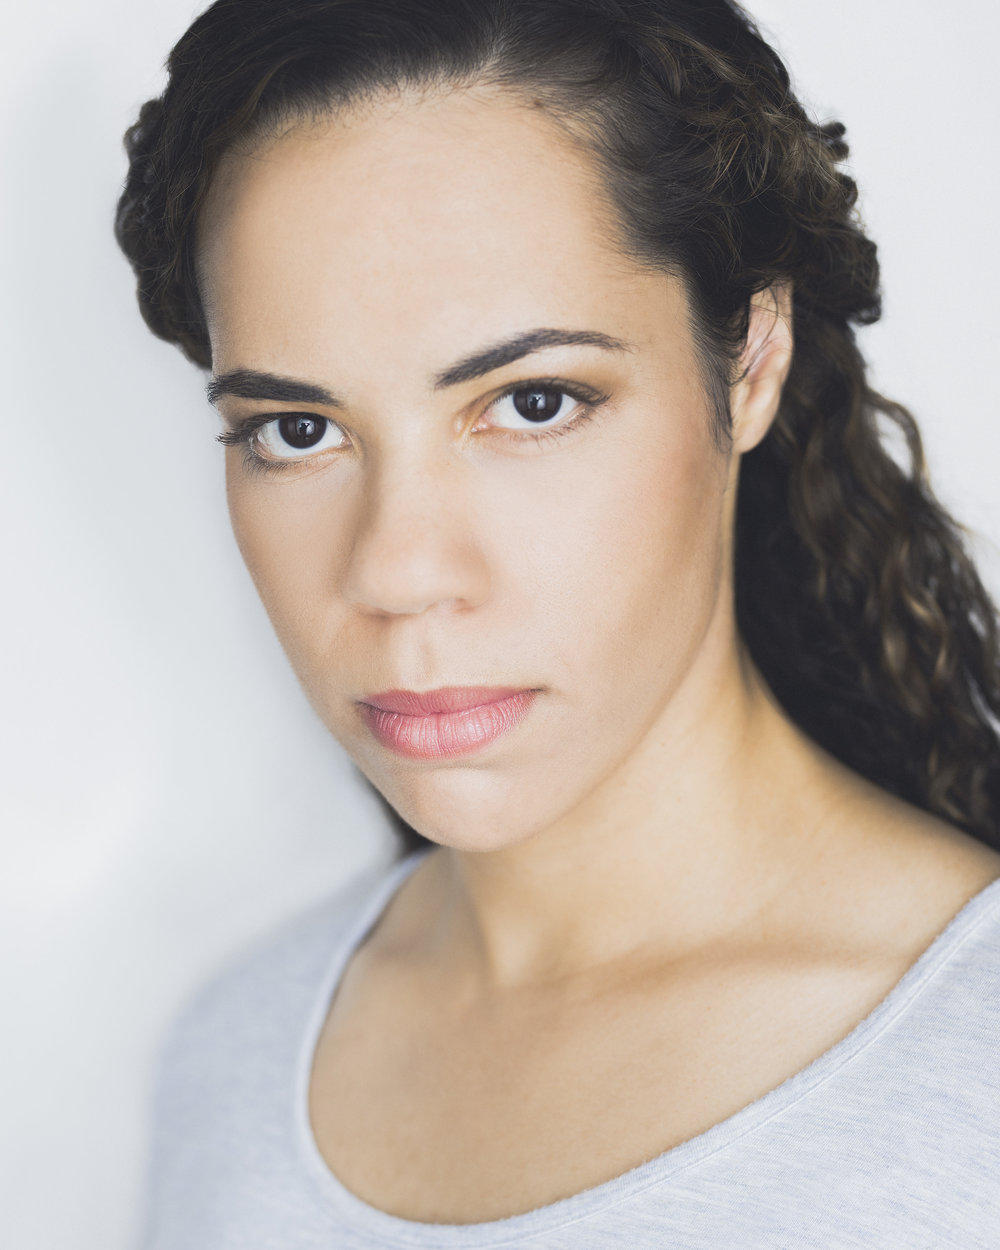 Chloe Mikala - D.C./Baltimore: Second City/Woolly Mammoth Theatre Co.: She The People (u/s); Second City/John F. Kennedy Center: Generation Gap (u/s). Rorschach Theatre: Sing to Me Now. NextStop Theatre Co.: 45 Plays for 45 Presidents. The Welders: To Tell My Story: A Hamlet Fanfic; Switch. Keegan Theatre: Here Again (WomXn on Fire Festival); Pointless Theatre Co.: A Very Pointless Holiday Spectacular. Source Theatre Festival: Threat Level: Cream; The Emperor's Big, Fat, Naked Revolution. Round House Theatre: Period Sisters (workshop production). Capital Fringe Festival: The Tragical Comical Fool's Game. Baltimore Center Stage: Les Liaisons Dangereuses. Everyman Theatre: A Streetcar Named Desire. Single Carrot Theatre: Lear. Chesapeake Shakespeare Company: Unscene (workshop production). Iron Crow Theatre: The Well of Horniness. TRAINING: Towson University; iO Theatre Chicago. UPCOMING: The Burn with The Hub Theatre and A Misanthrope with WSC Avant Bard. chloemikala.com. pronouns: she/her